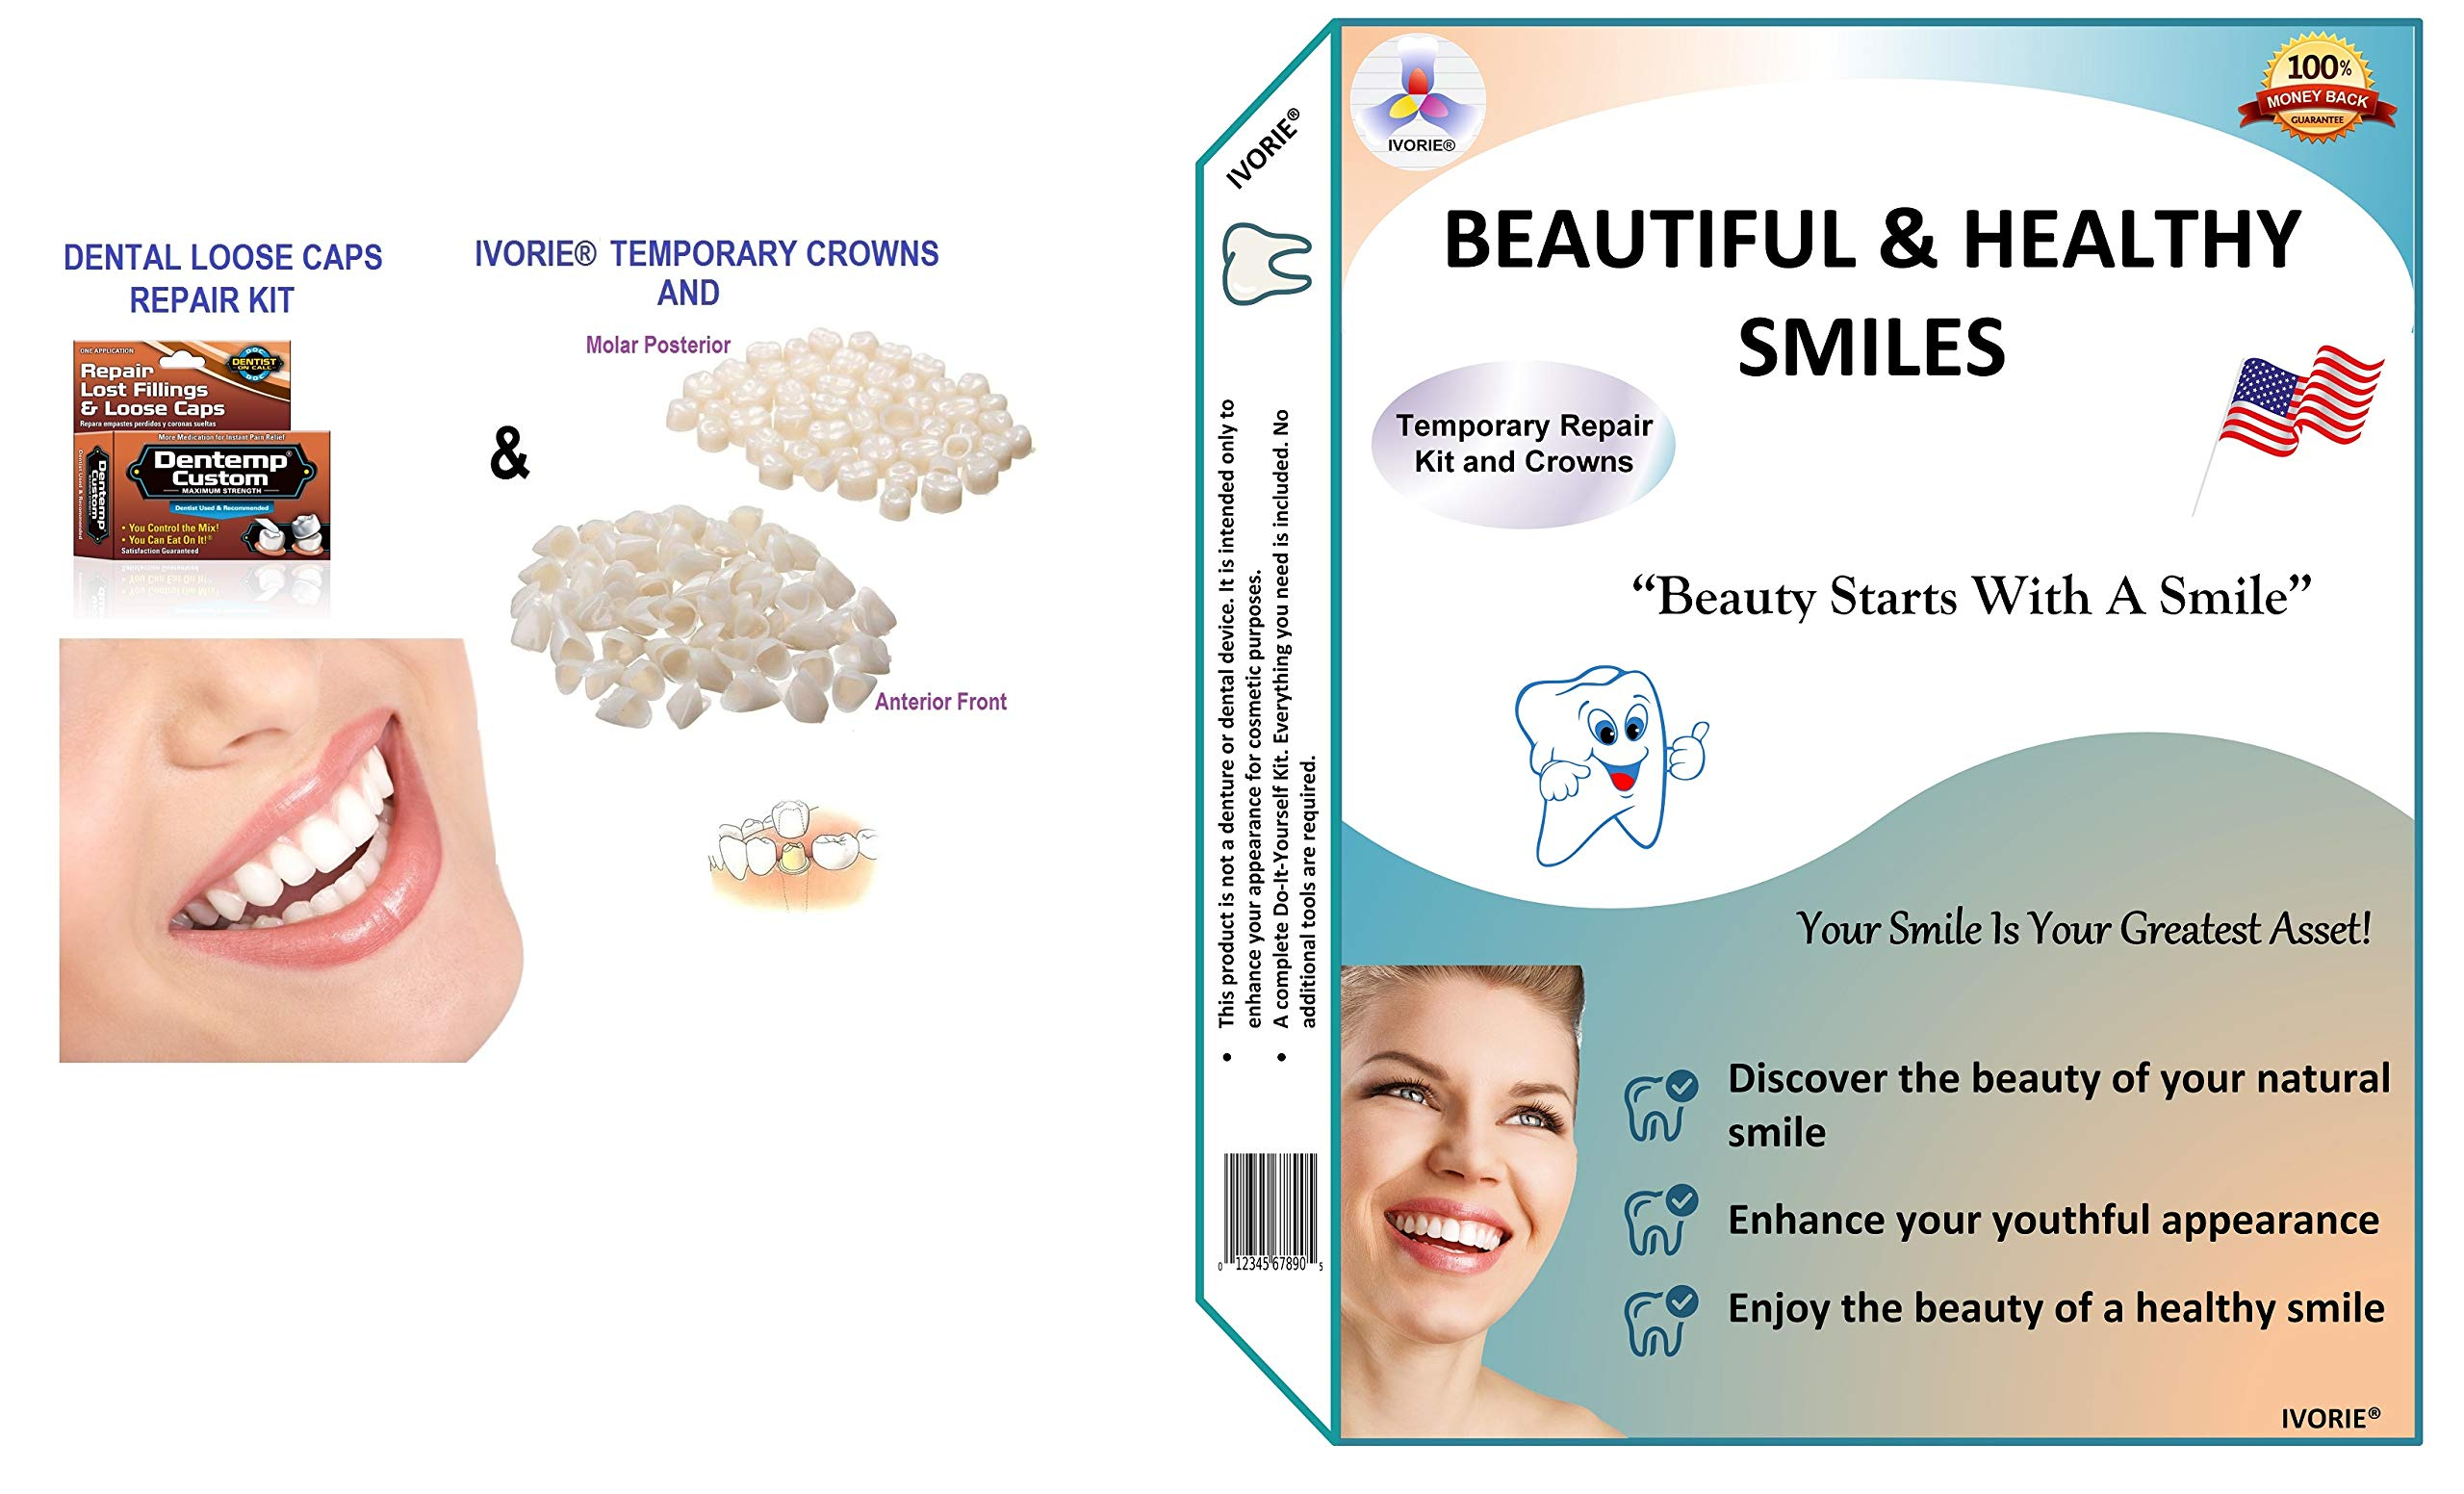 Maximum Strength Dental Loose Caps Repair Kit and Temporary Teeth Crowns Home Use (Posterior Molar Teeth)